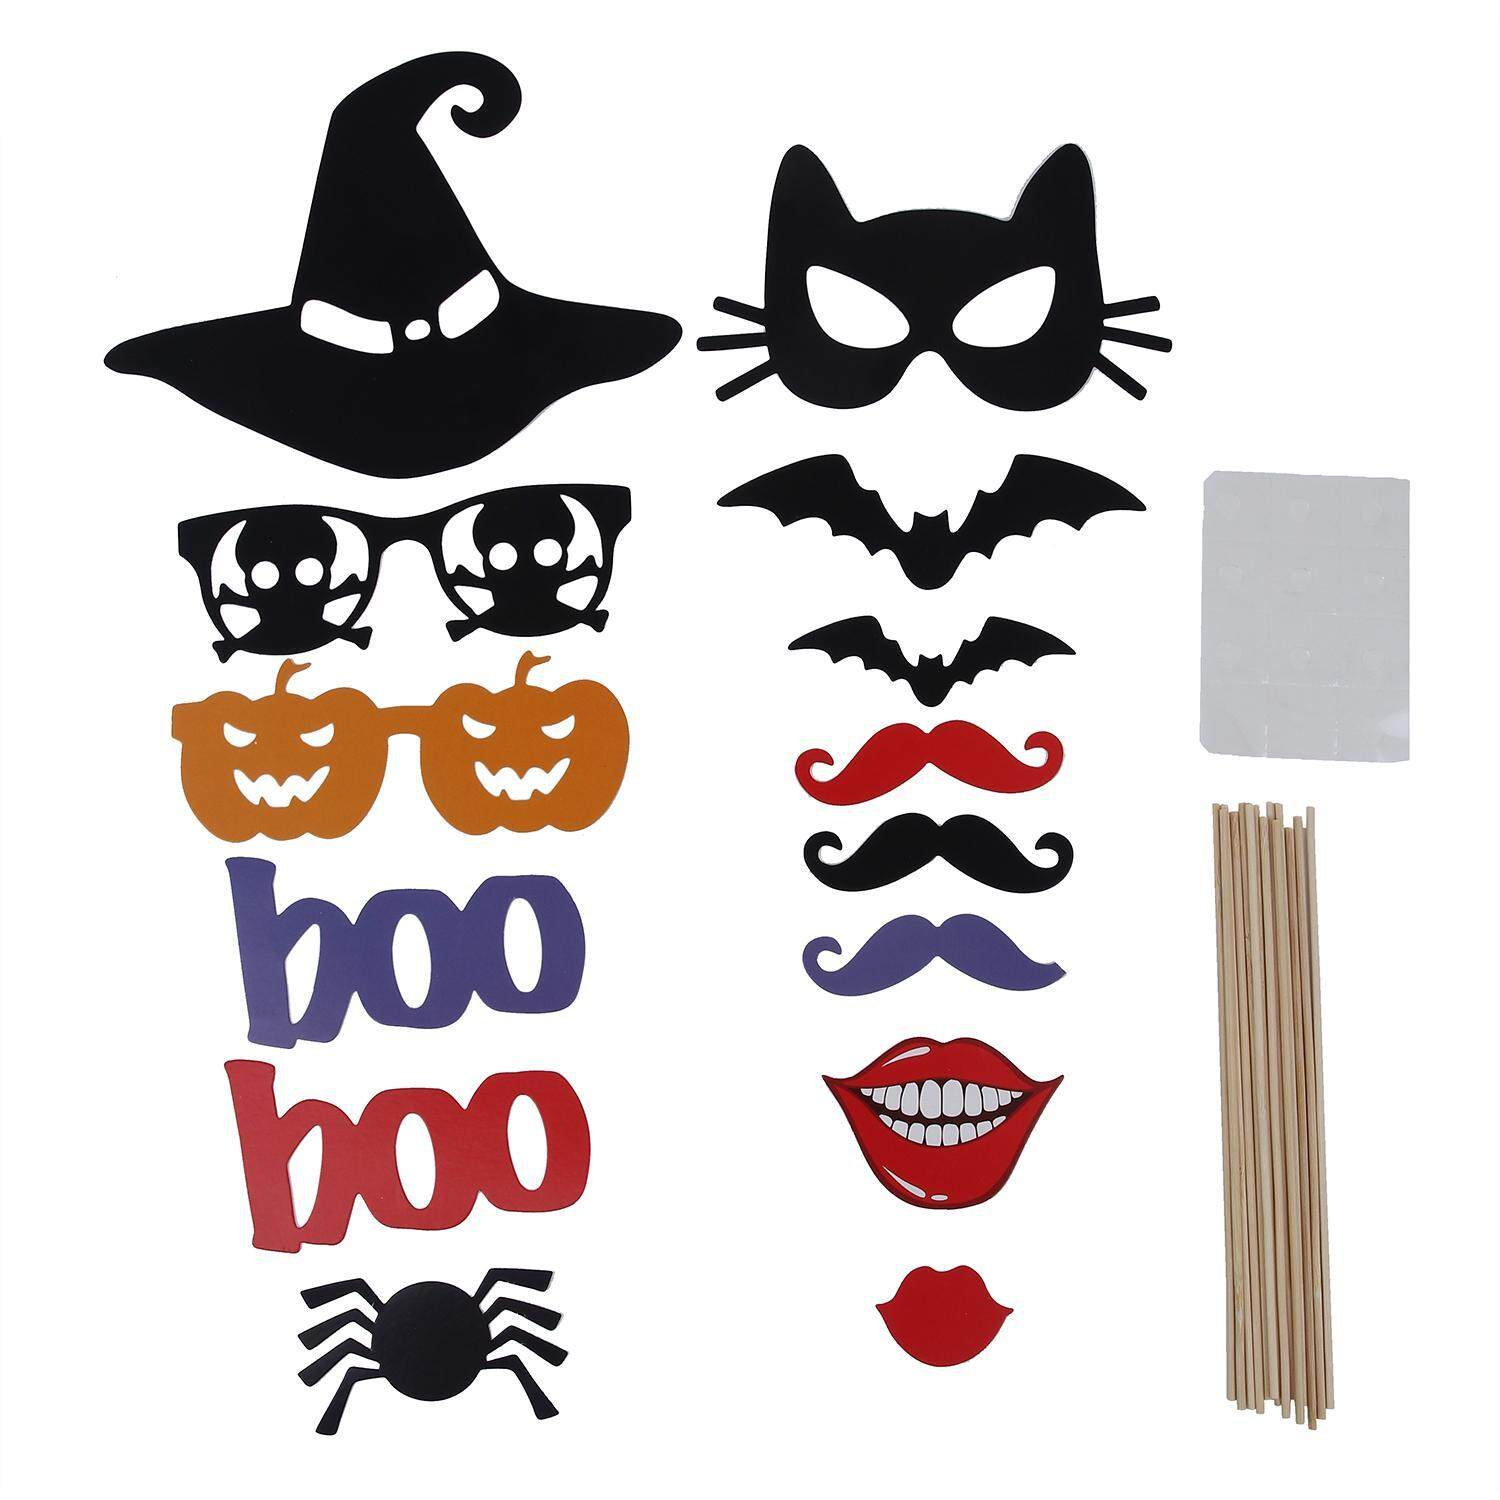 wuzeyu Photo Booth Props DIY Kit For Halloween Christmas Wedding Birthday Graduation Party,Photobooth Dress-up Accessories Party Favors,58 Set - intl